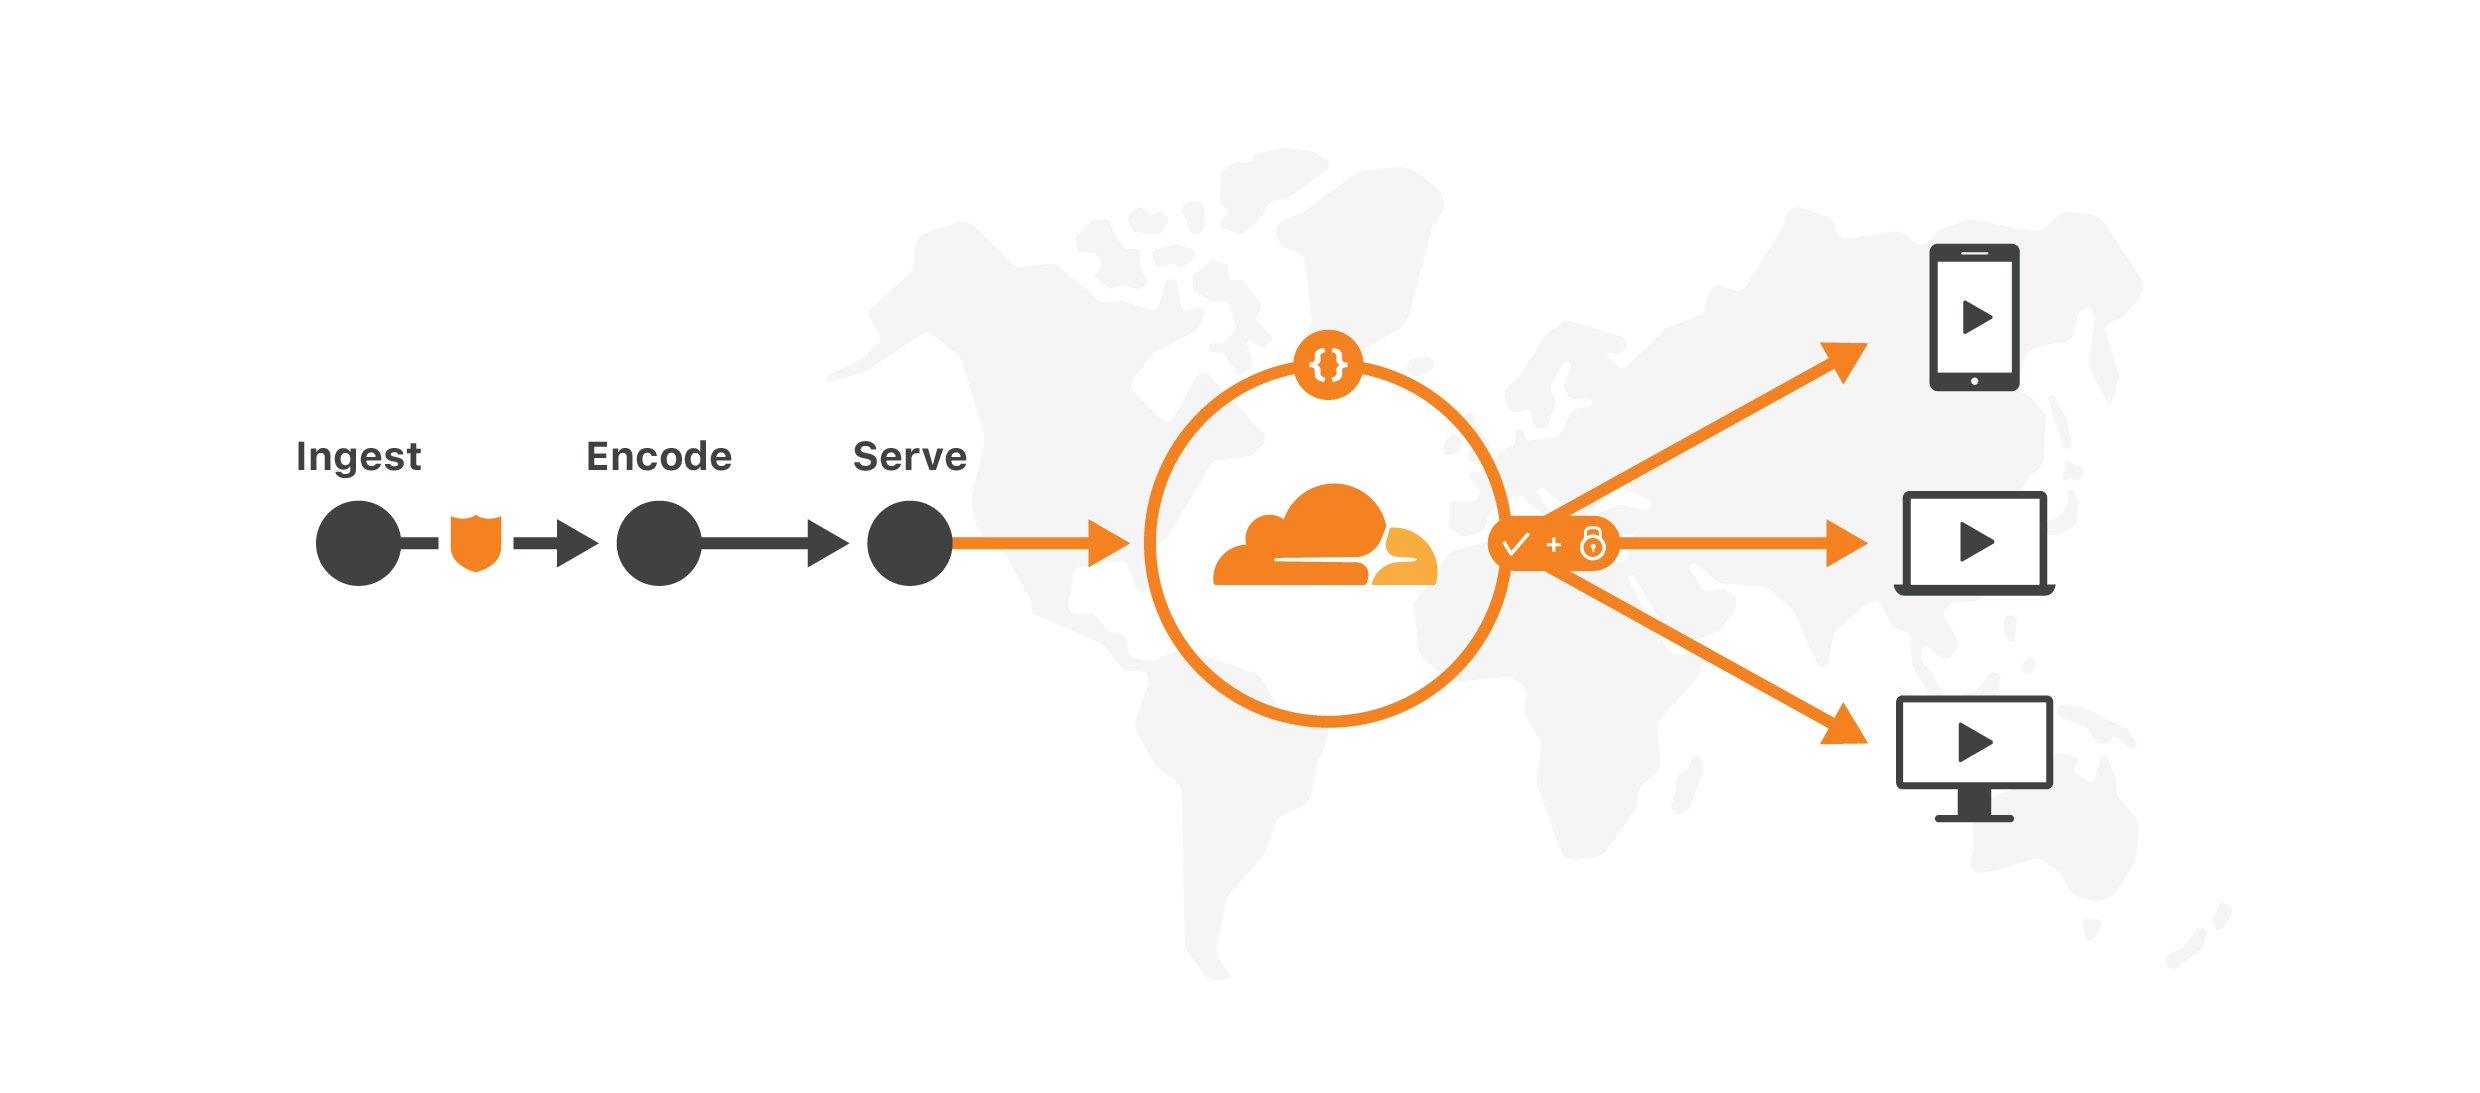 MRK-8731 CloudflareForOTT The Cloudflare Solution - Diagram